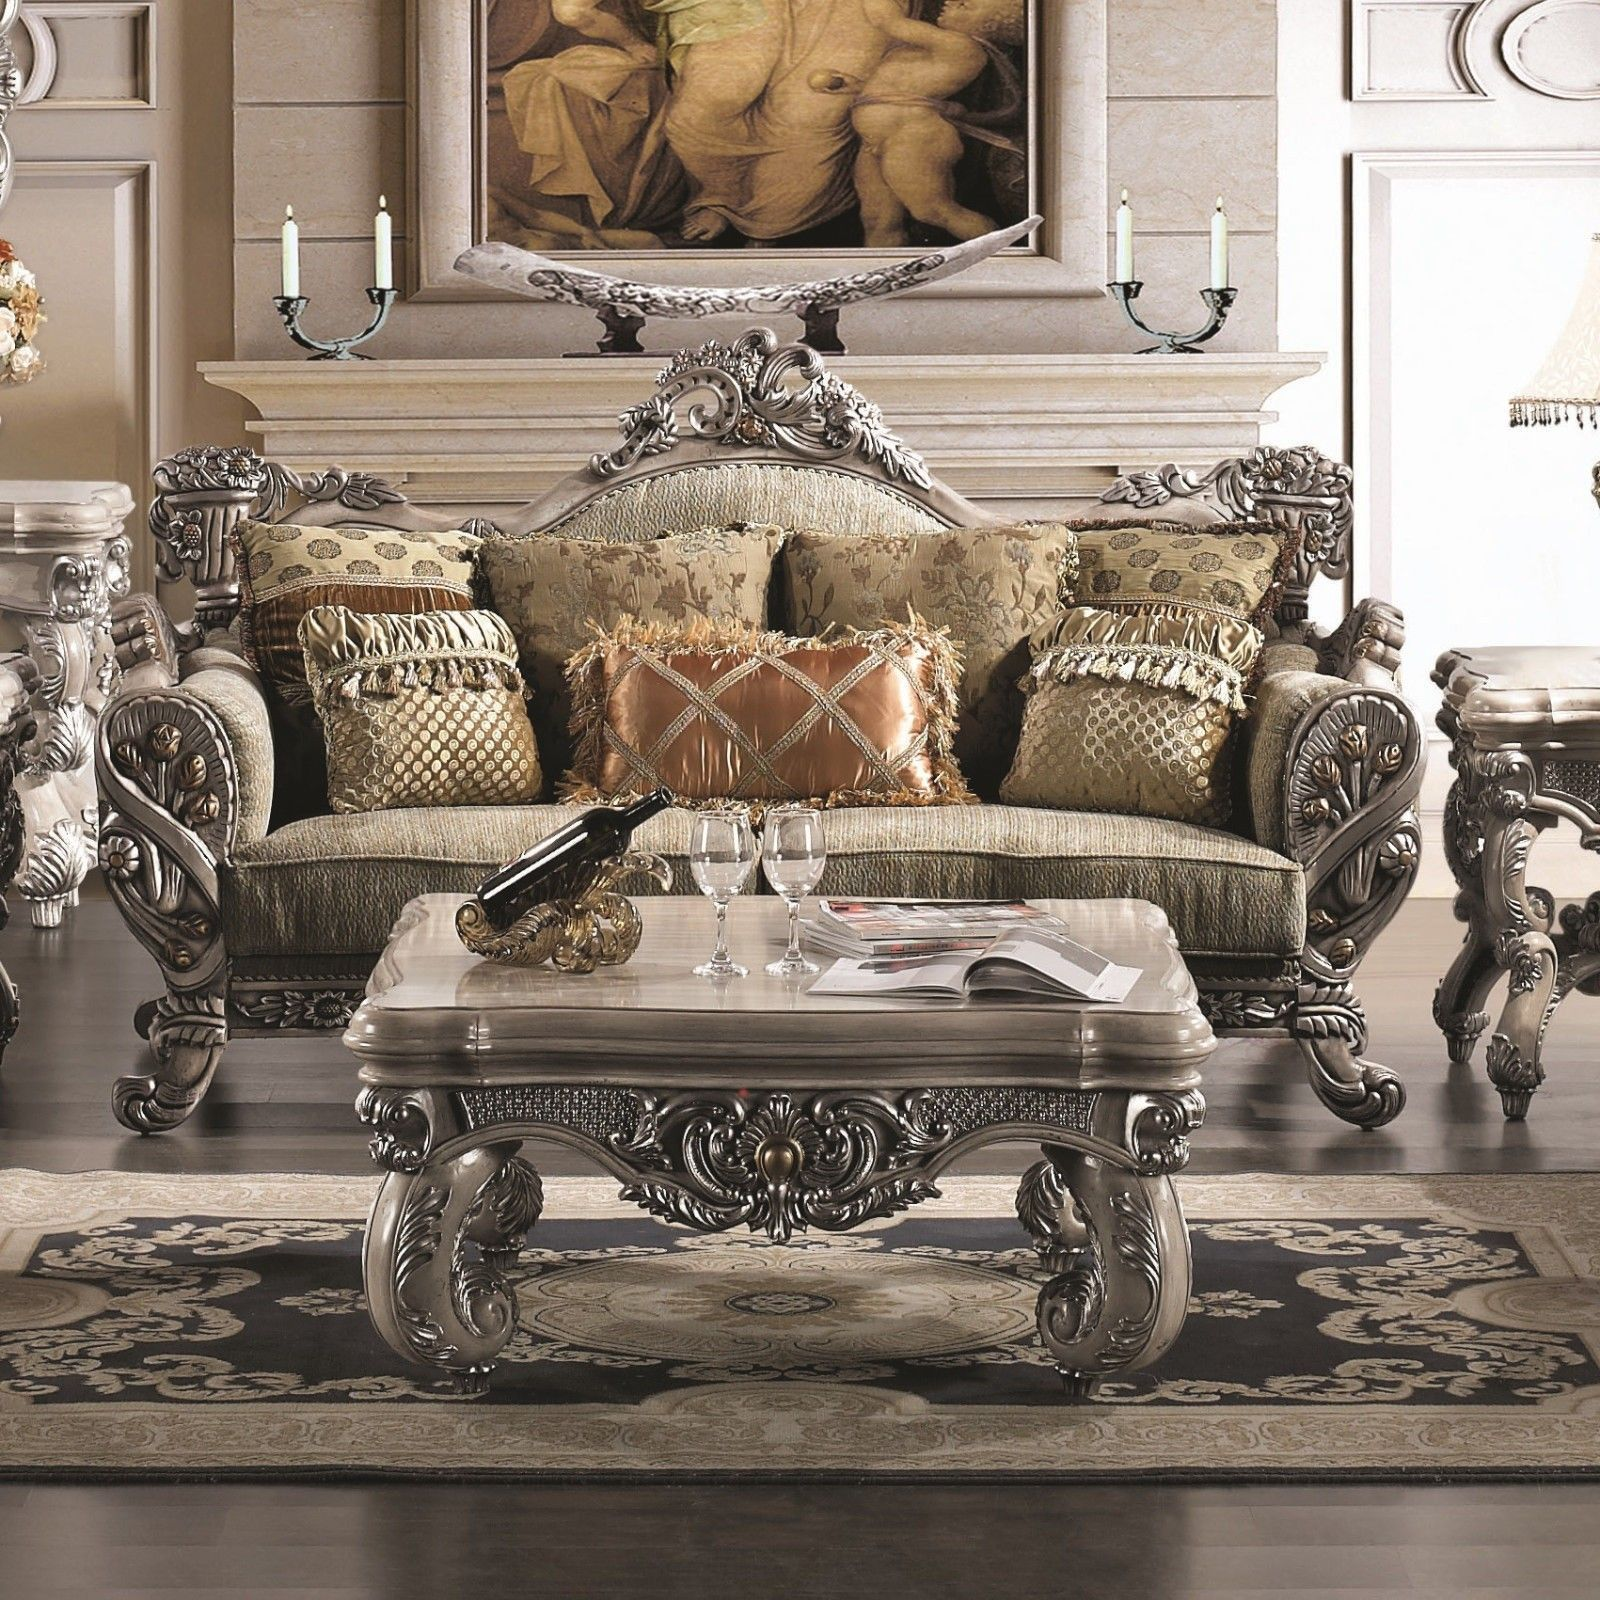 Get Inspired with Vintage Coffee Tables | Living room sets ...